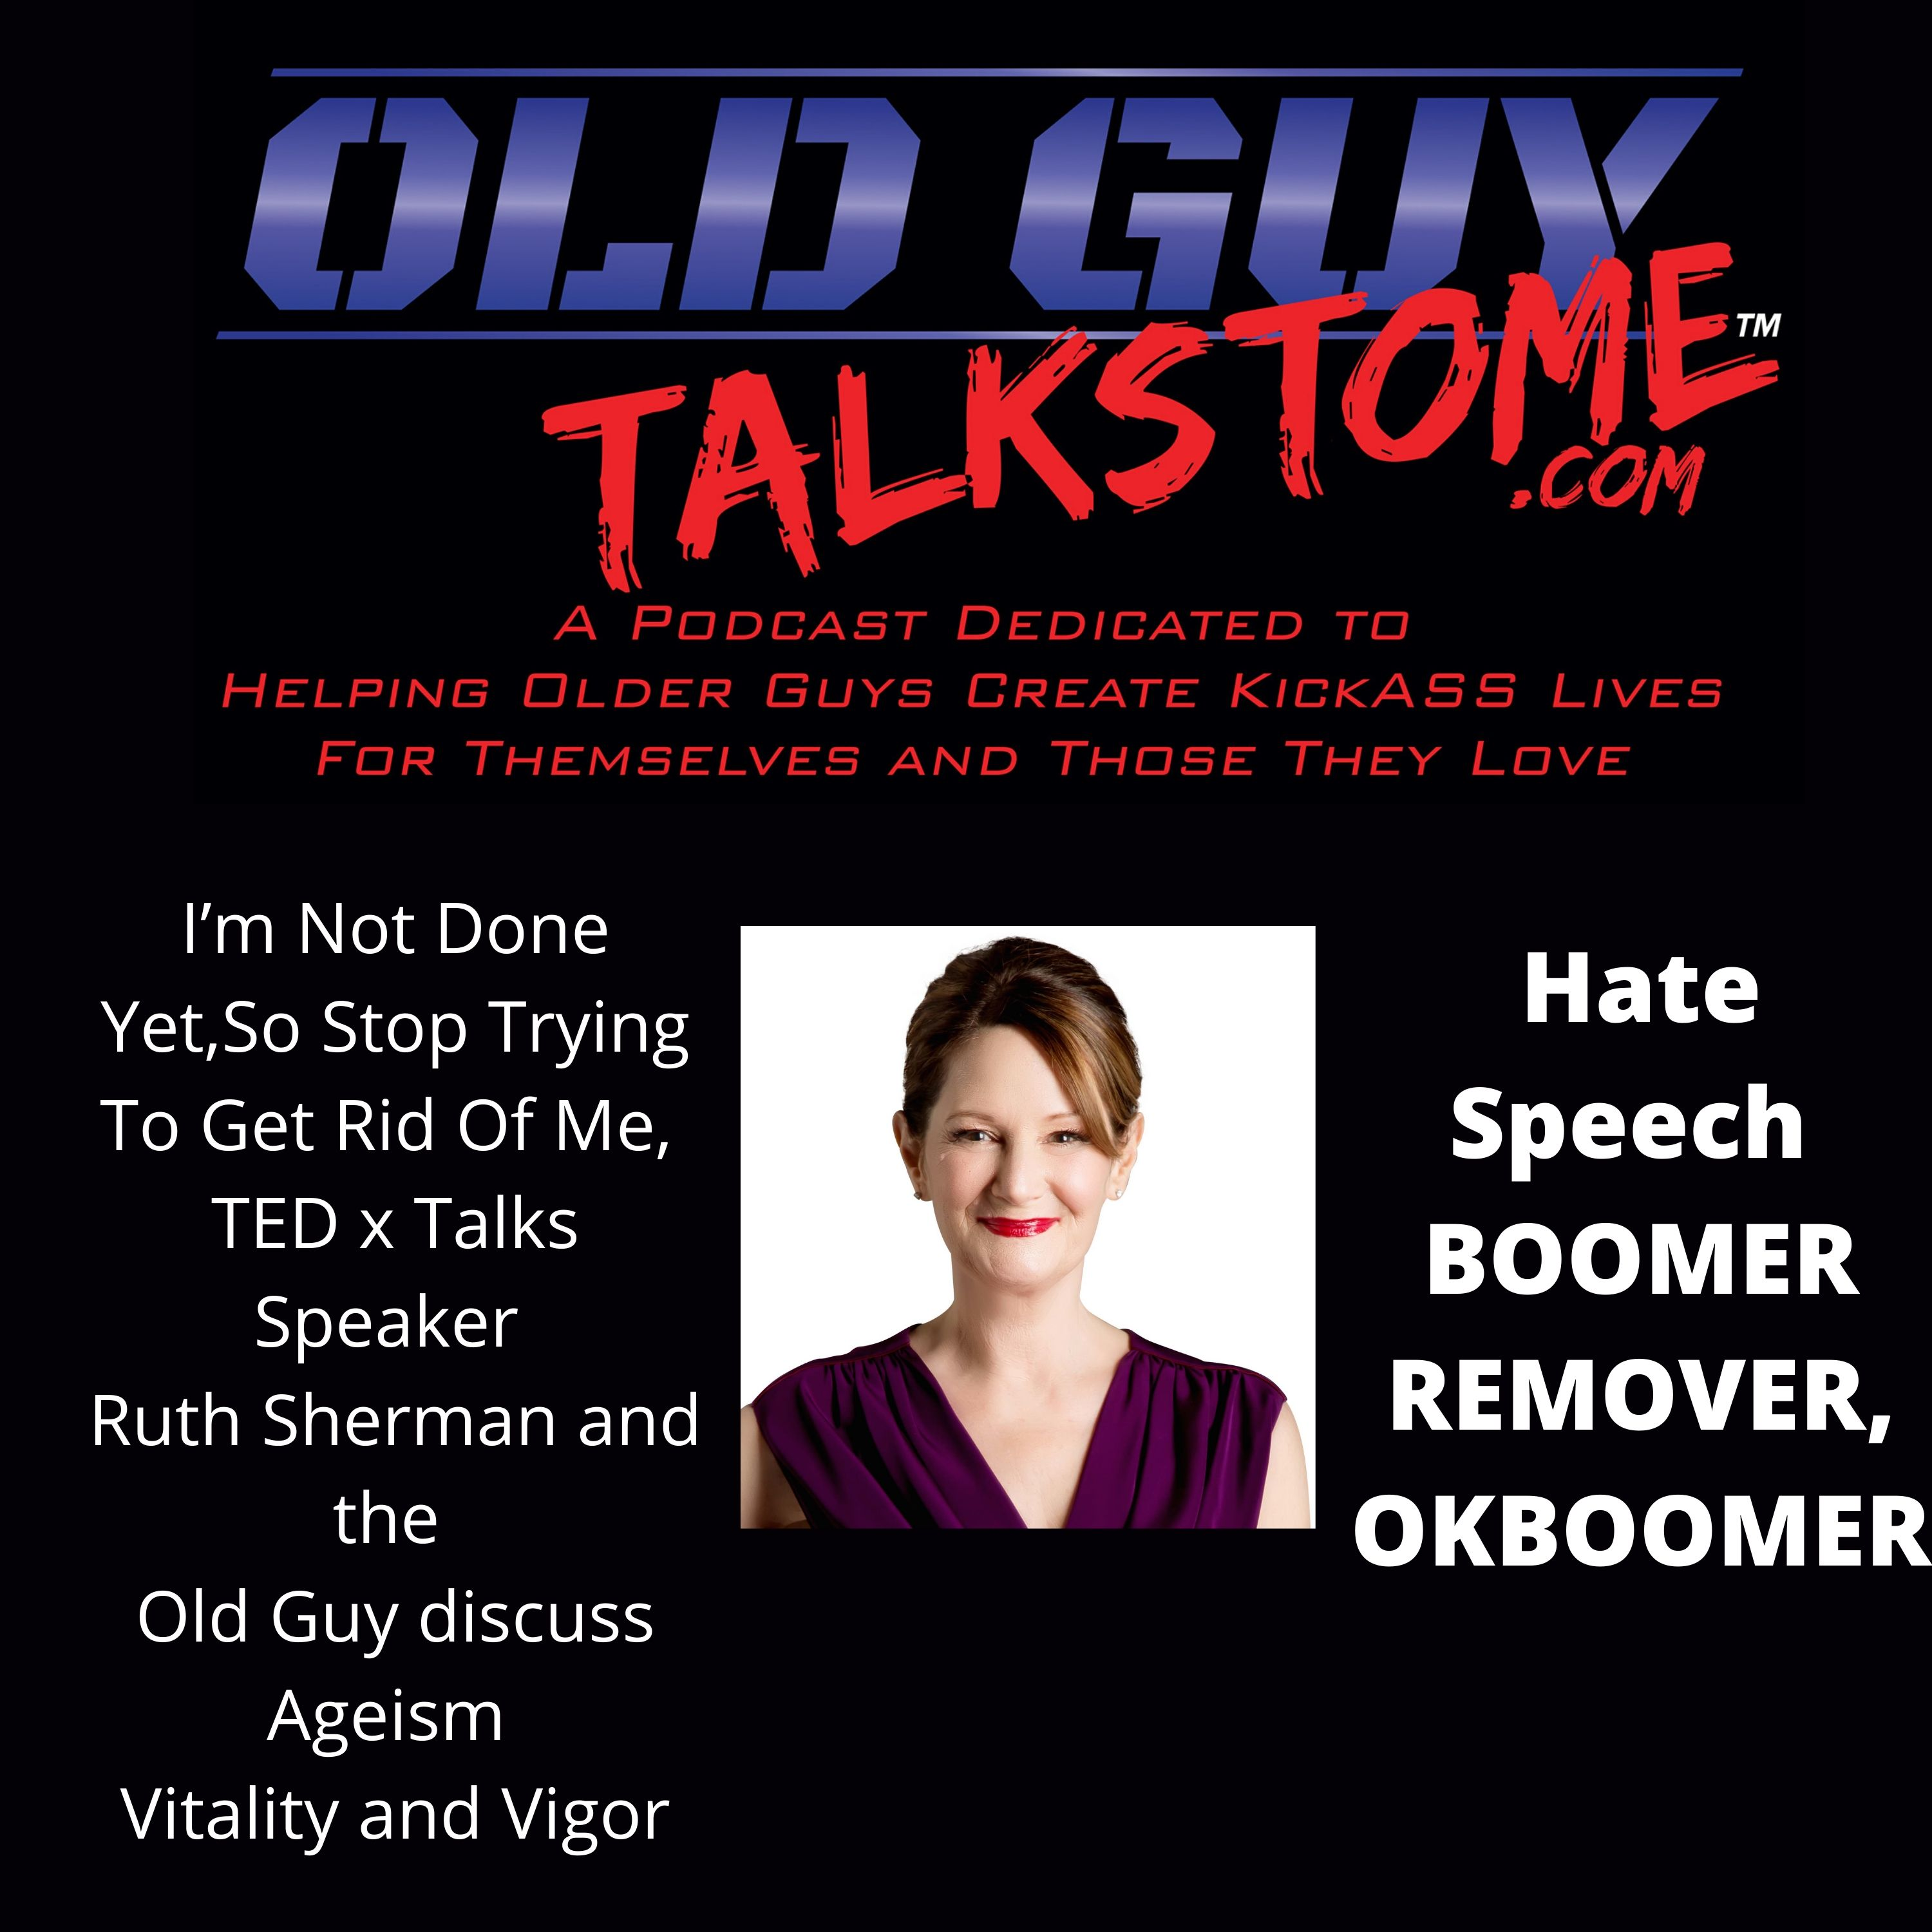 OldGuyTalksToMe - BOOMER REMOVER, OK BOOMER TEDxTalks ,I'm Not Done Yet, So Stop Trying To Get Rid Of Me, Speaker Ruth Sherman